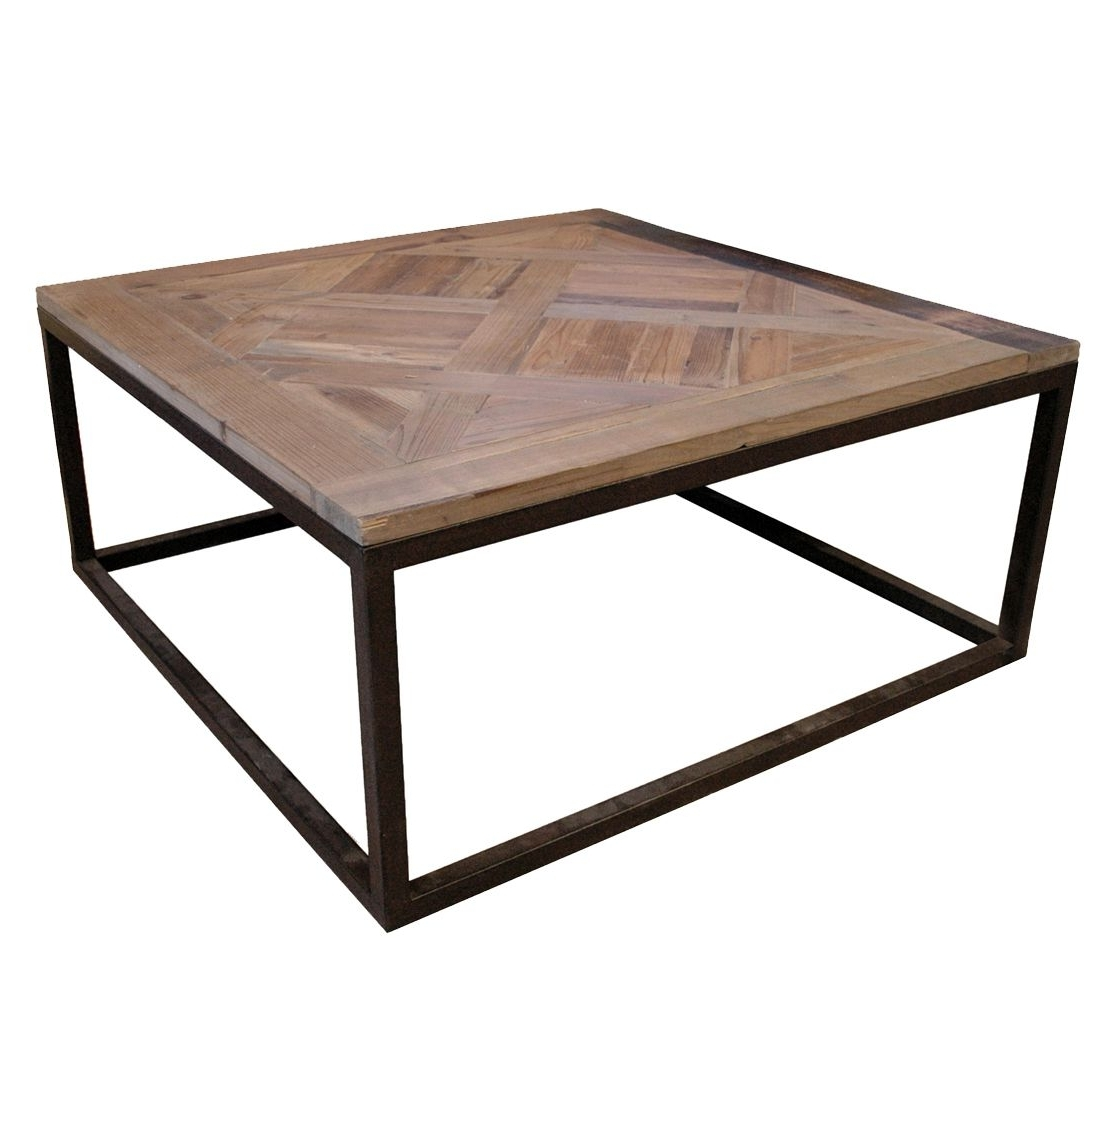 Gramercy Modern Rustic Reclaimed Parquet Wood Iron Coffee Table Regarding Most Current Reclaimed Elm Iron Coffee Tables (View 19 of 20)